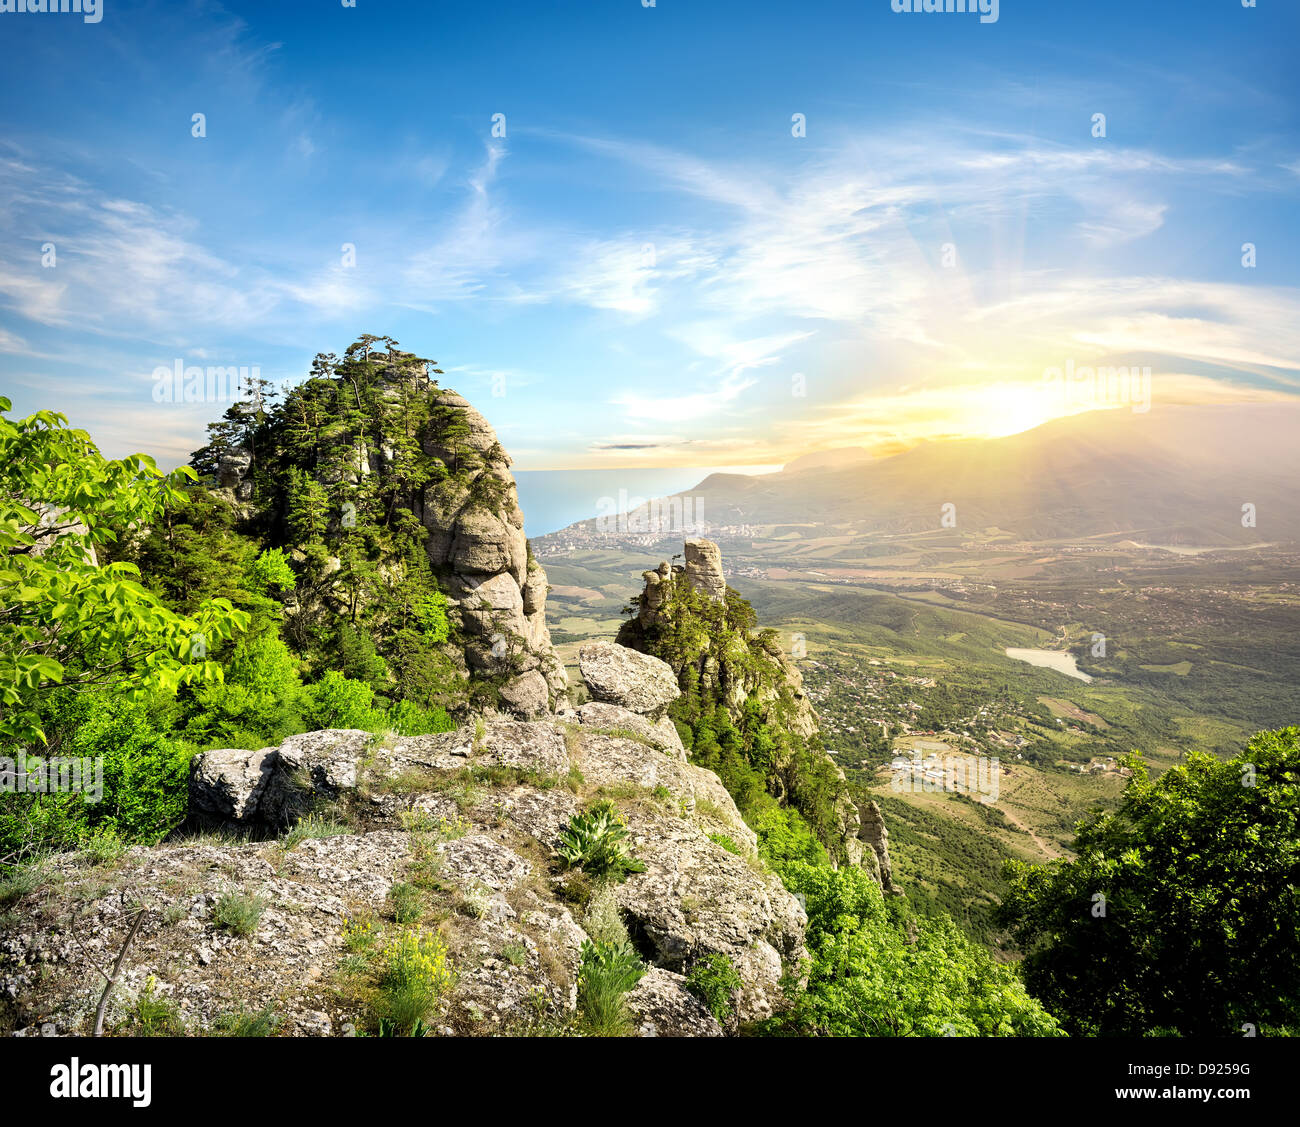 Mountains in the valley of ghosts. Crimea, Ukraine - Stock Image